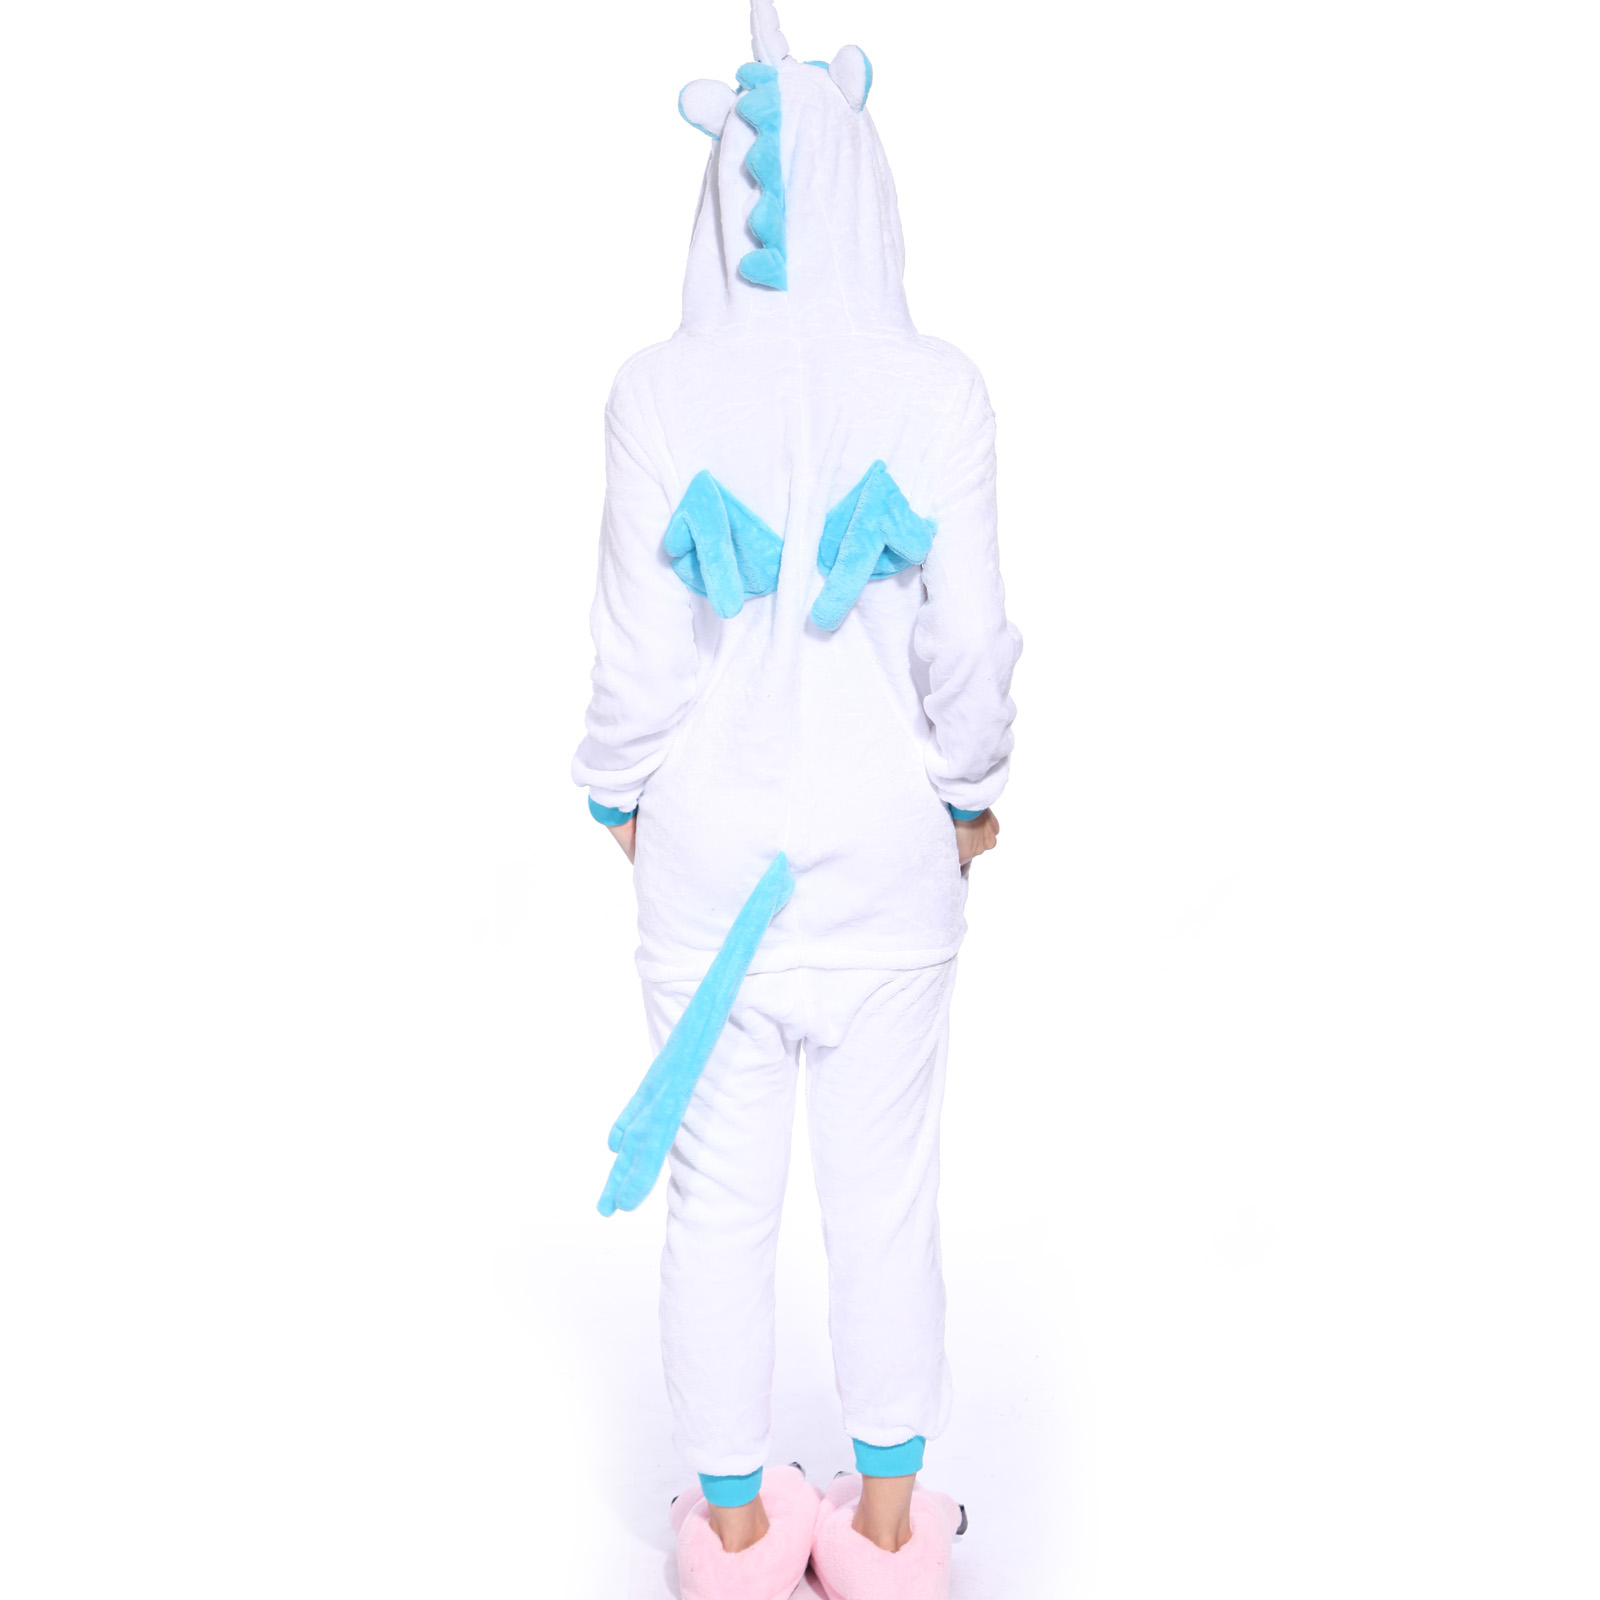 pyjama combinaison costume deguisement flanelle capuche licorne adulte carnaval ebay. Black Bedroom Furniture Sets. Home Design Ideas